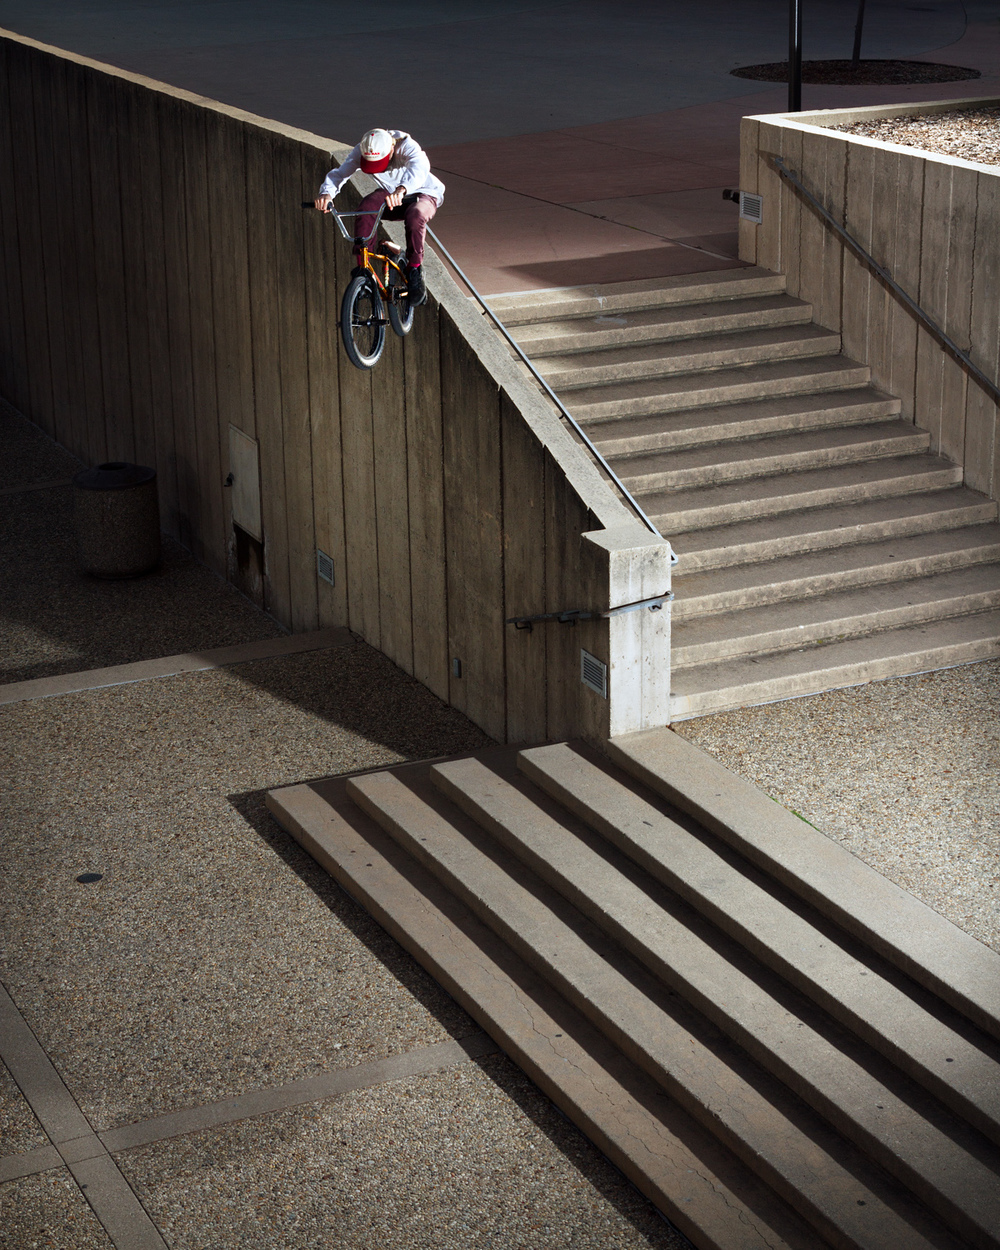 Tony Malouf with the quickest way to the bottom of the stairs.